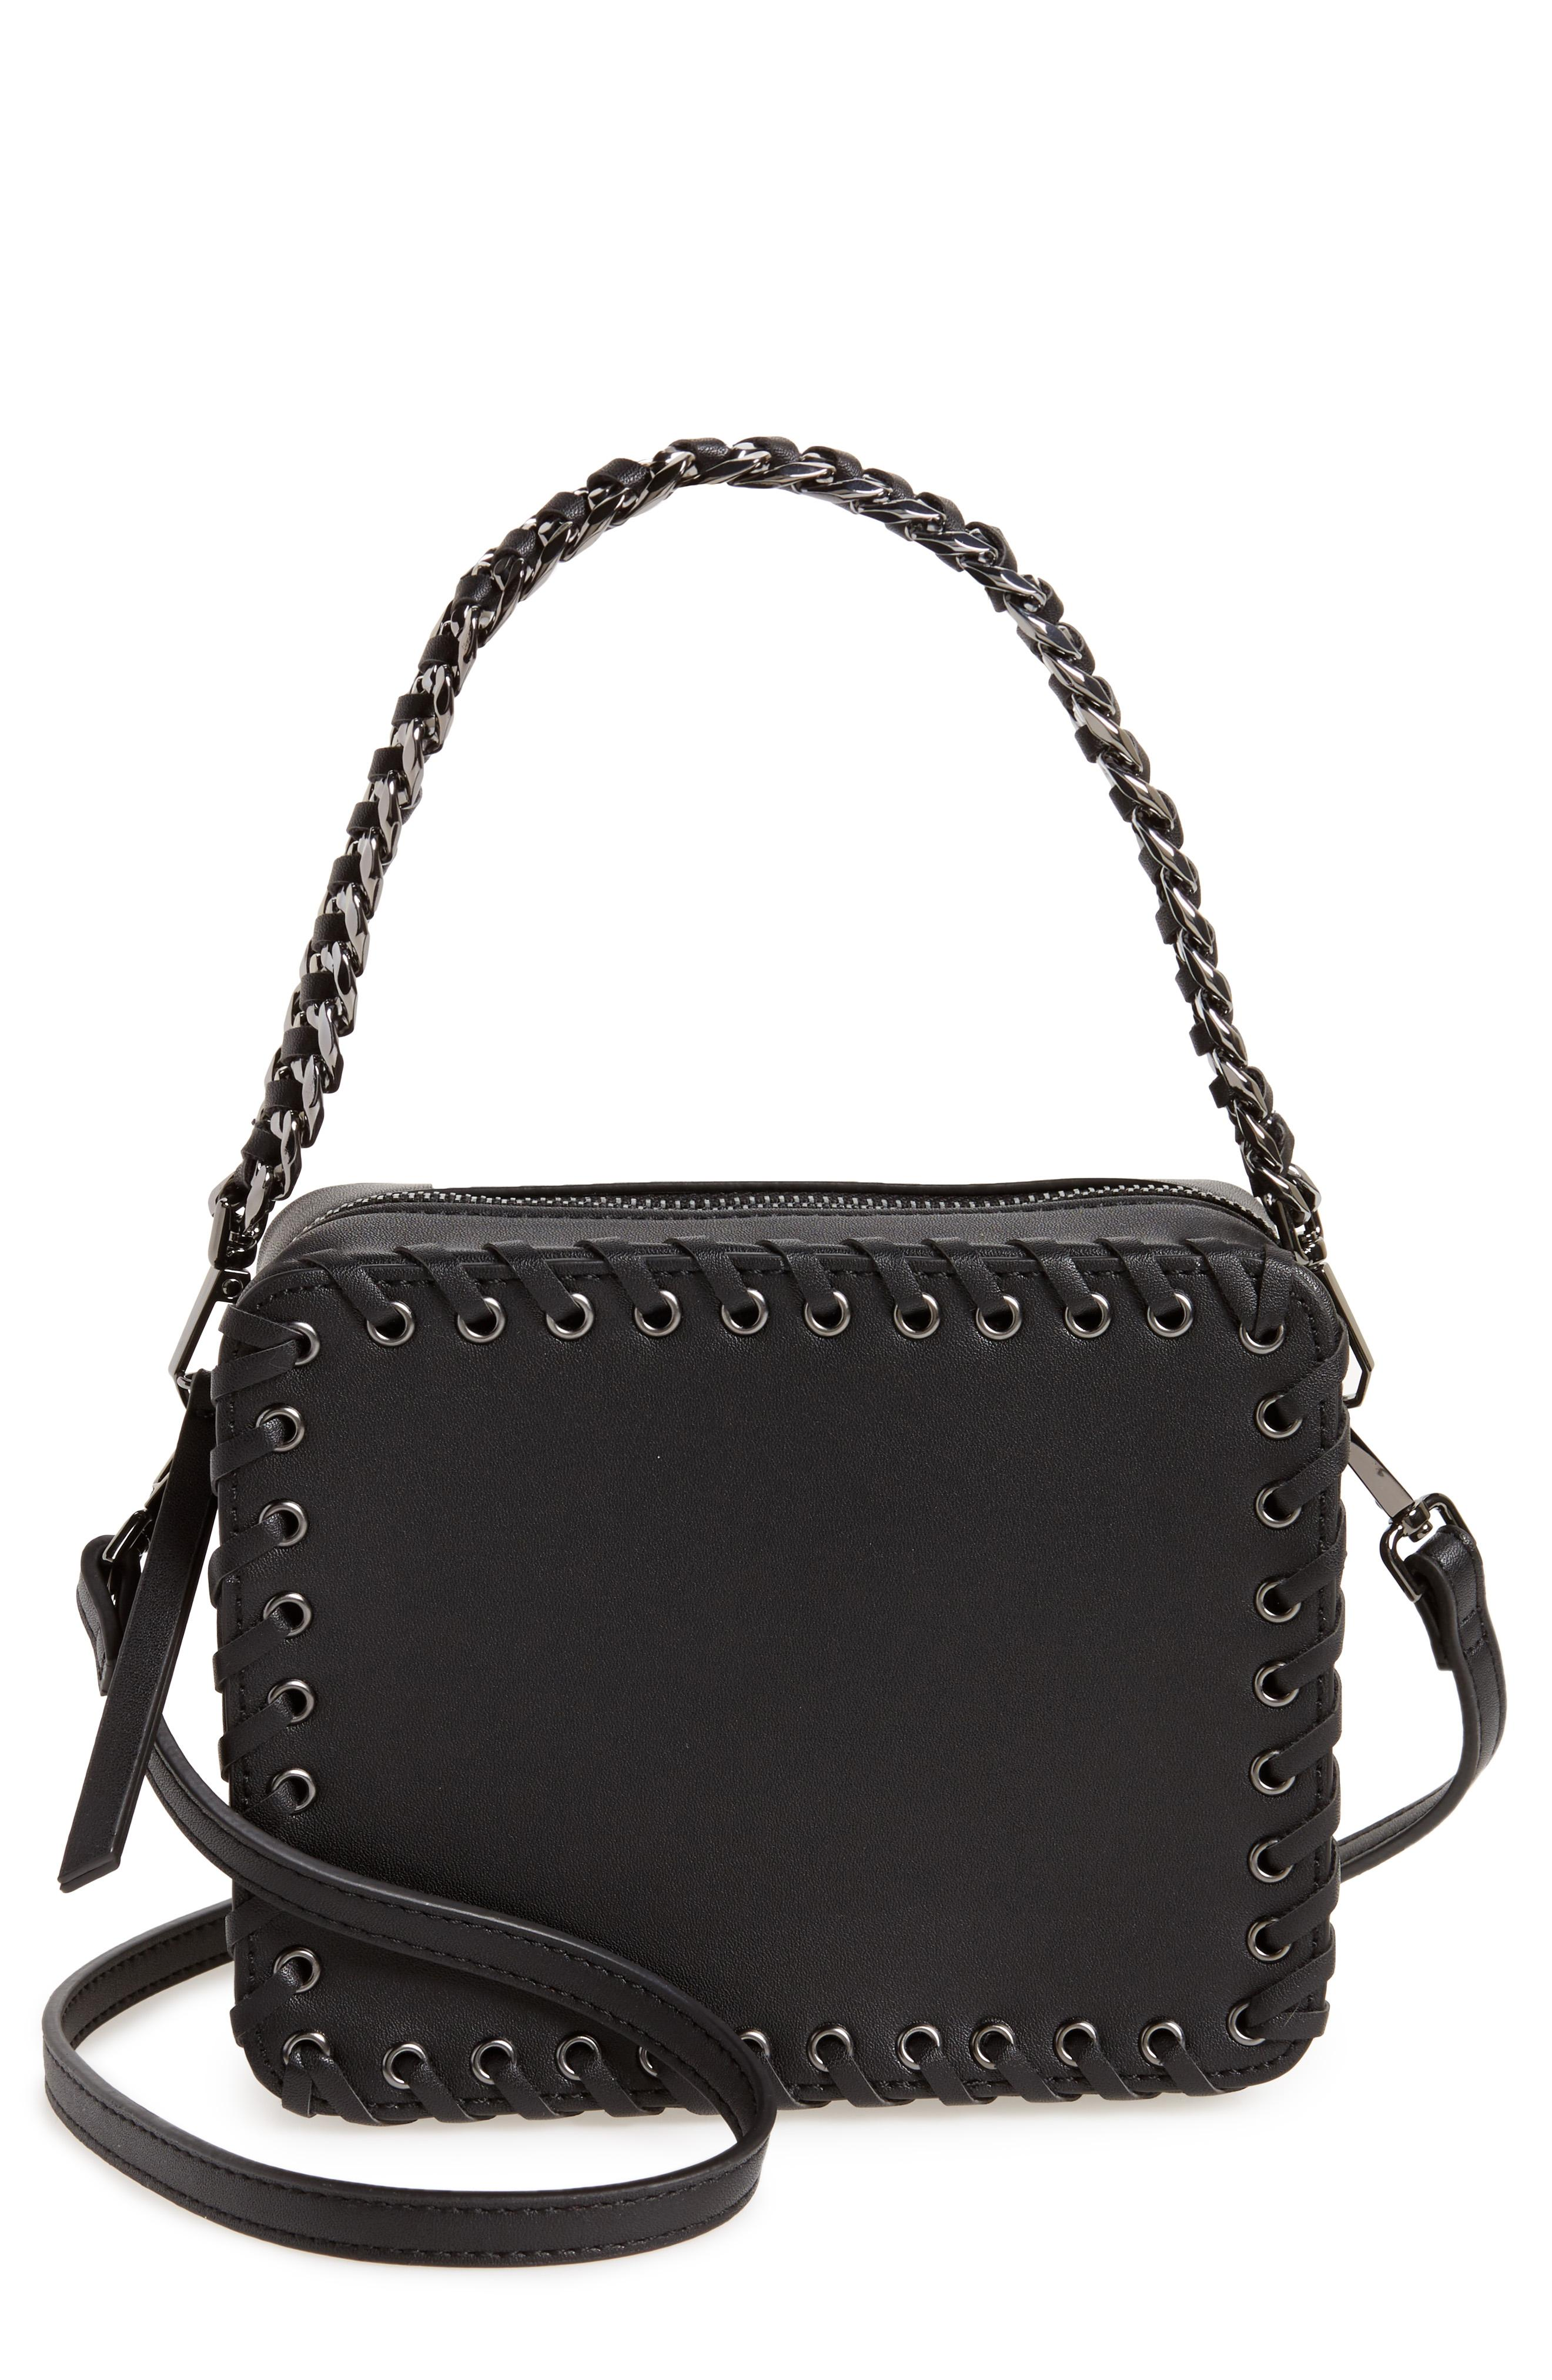 Topshop Rogue Whipstitch Faux Leather Crossbody Bag from Nordstrom{&amp;nbsp;} // Price: $52.00 //{&amp;nbsp;}(Image: Nordstrom // Nordstrom.com)<p></p>